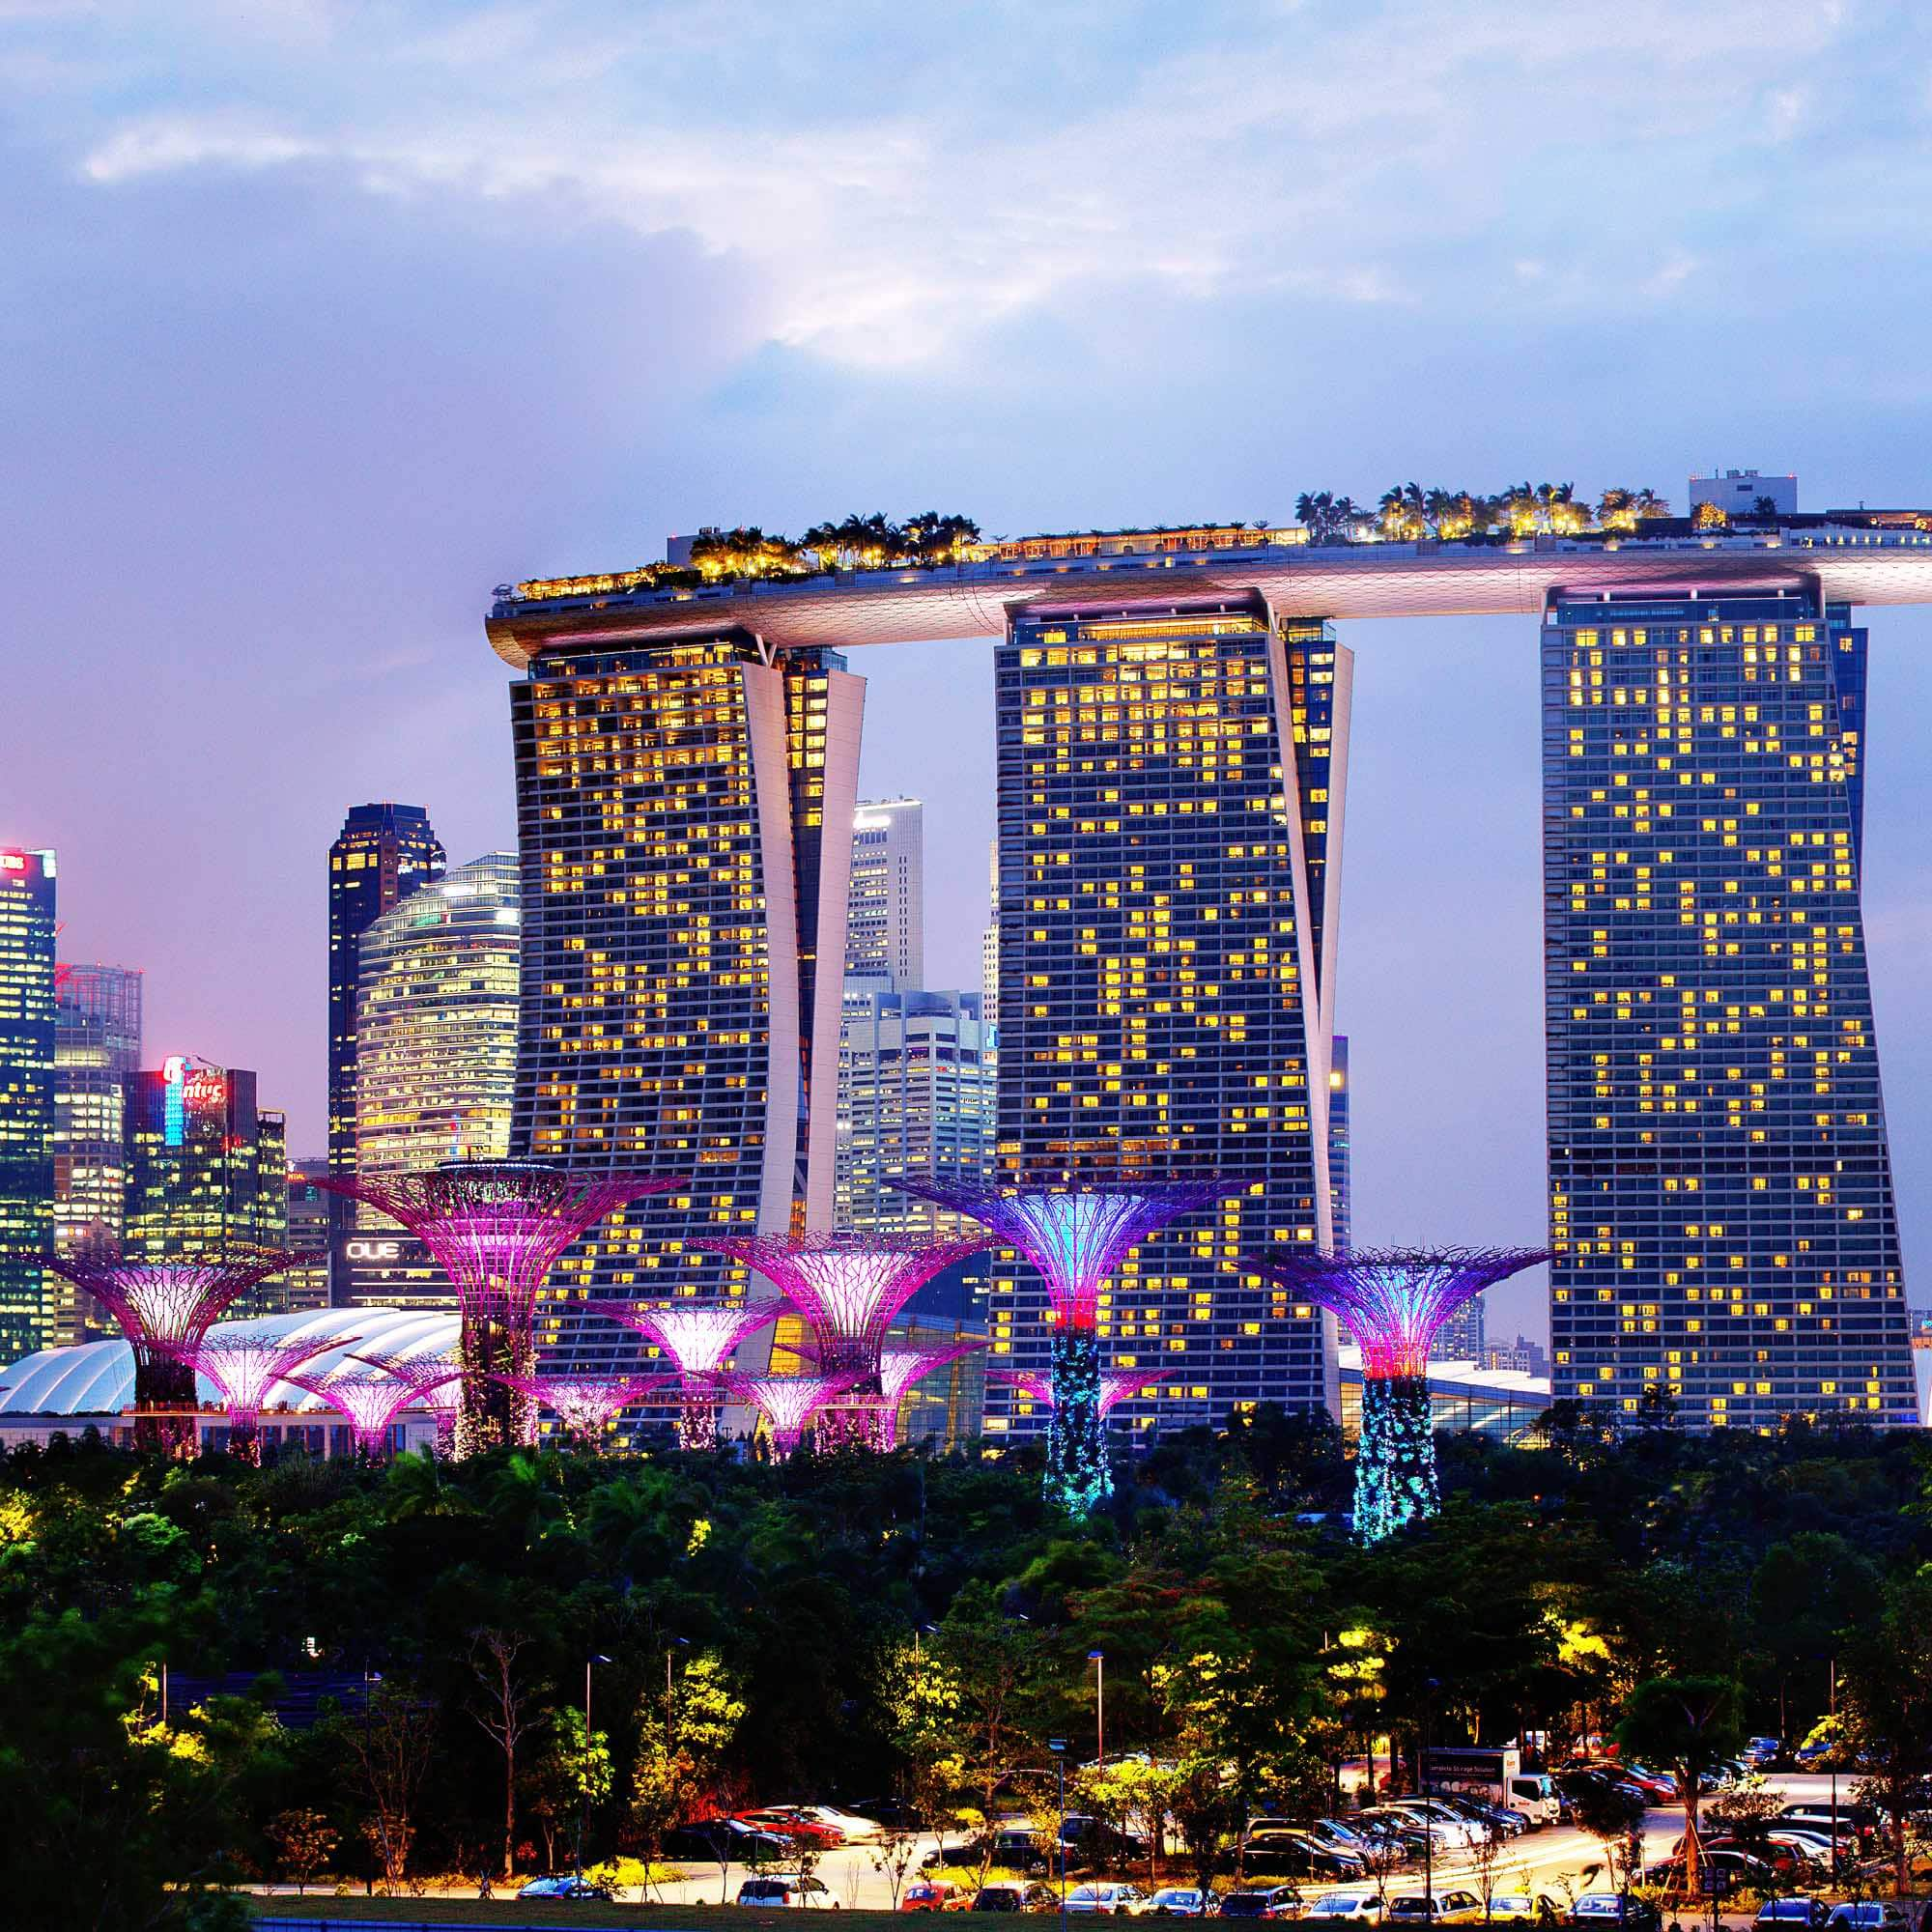 Boston to Singapore $587 RT Airfares on United Airlines Main Cabin (Travel January - March 2021)